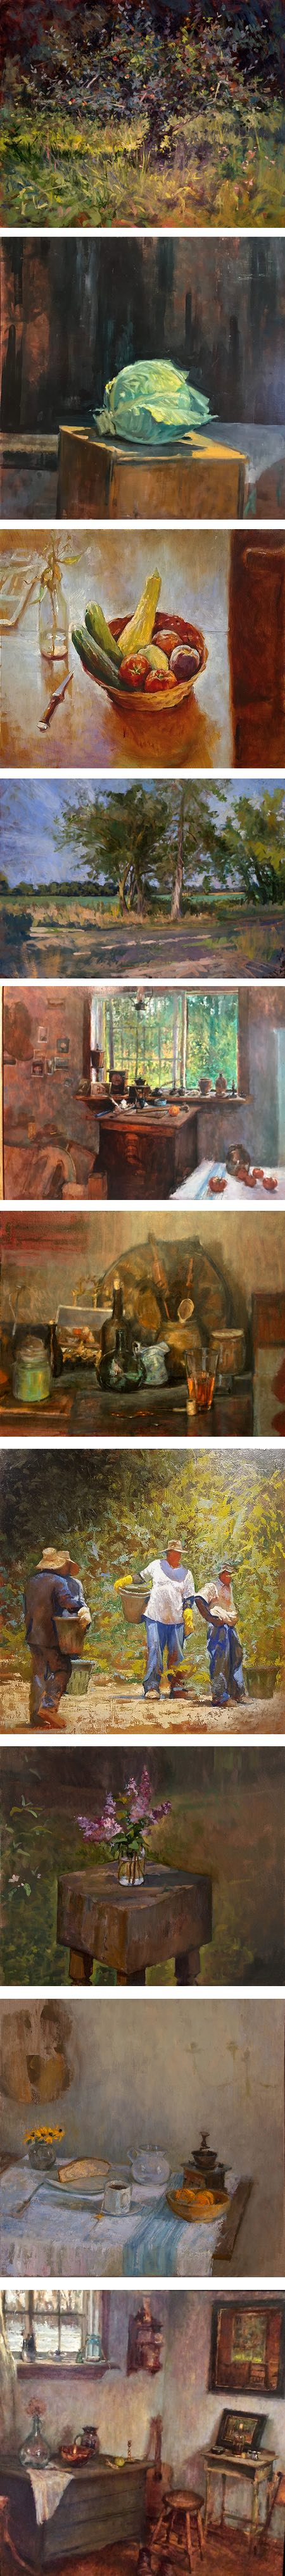 Michael Doyle, still life, interiors and landscape